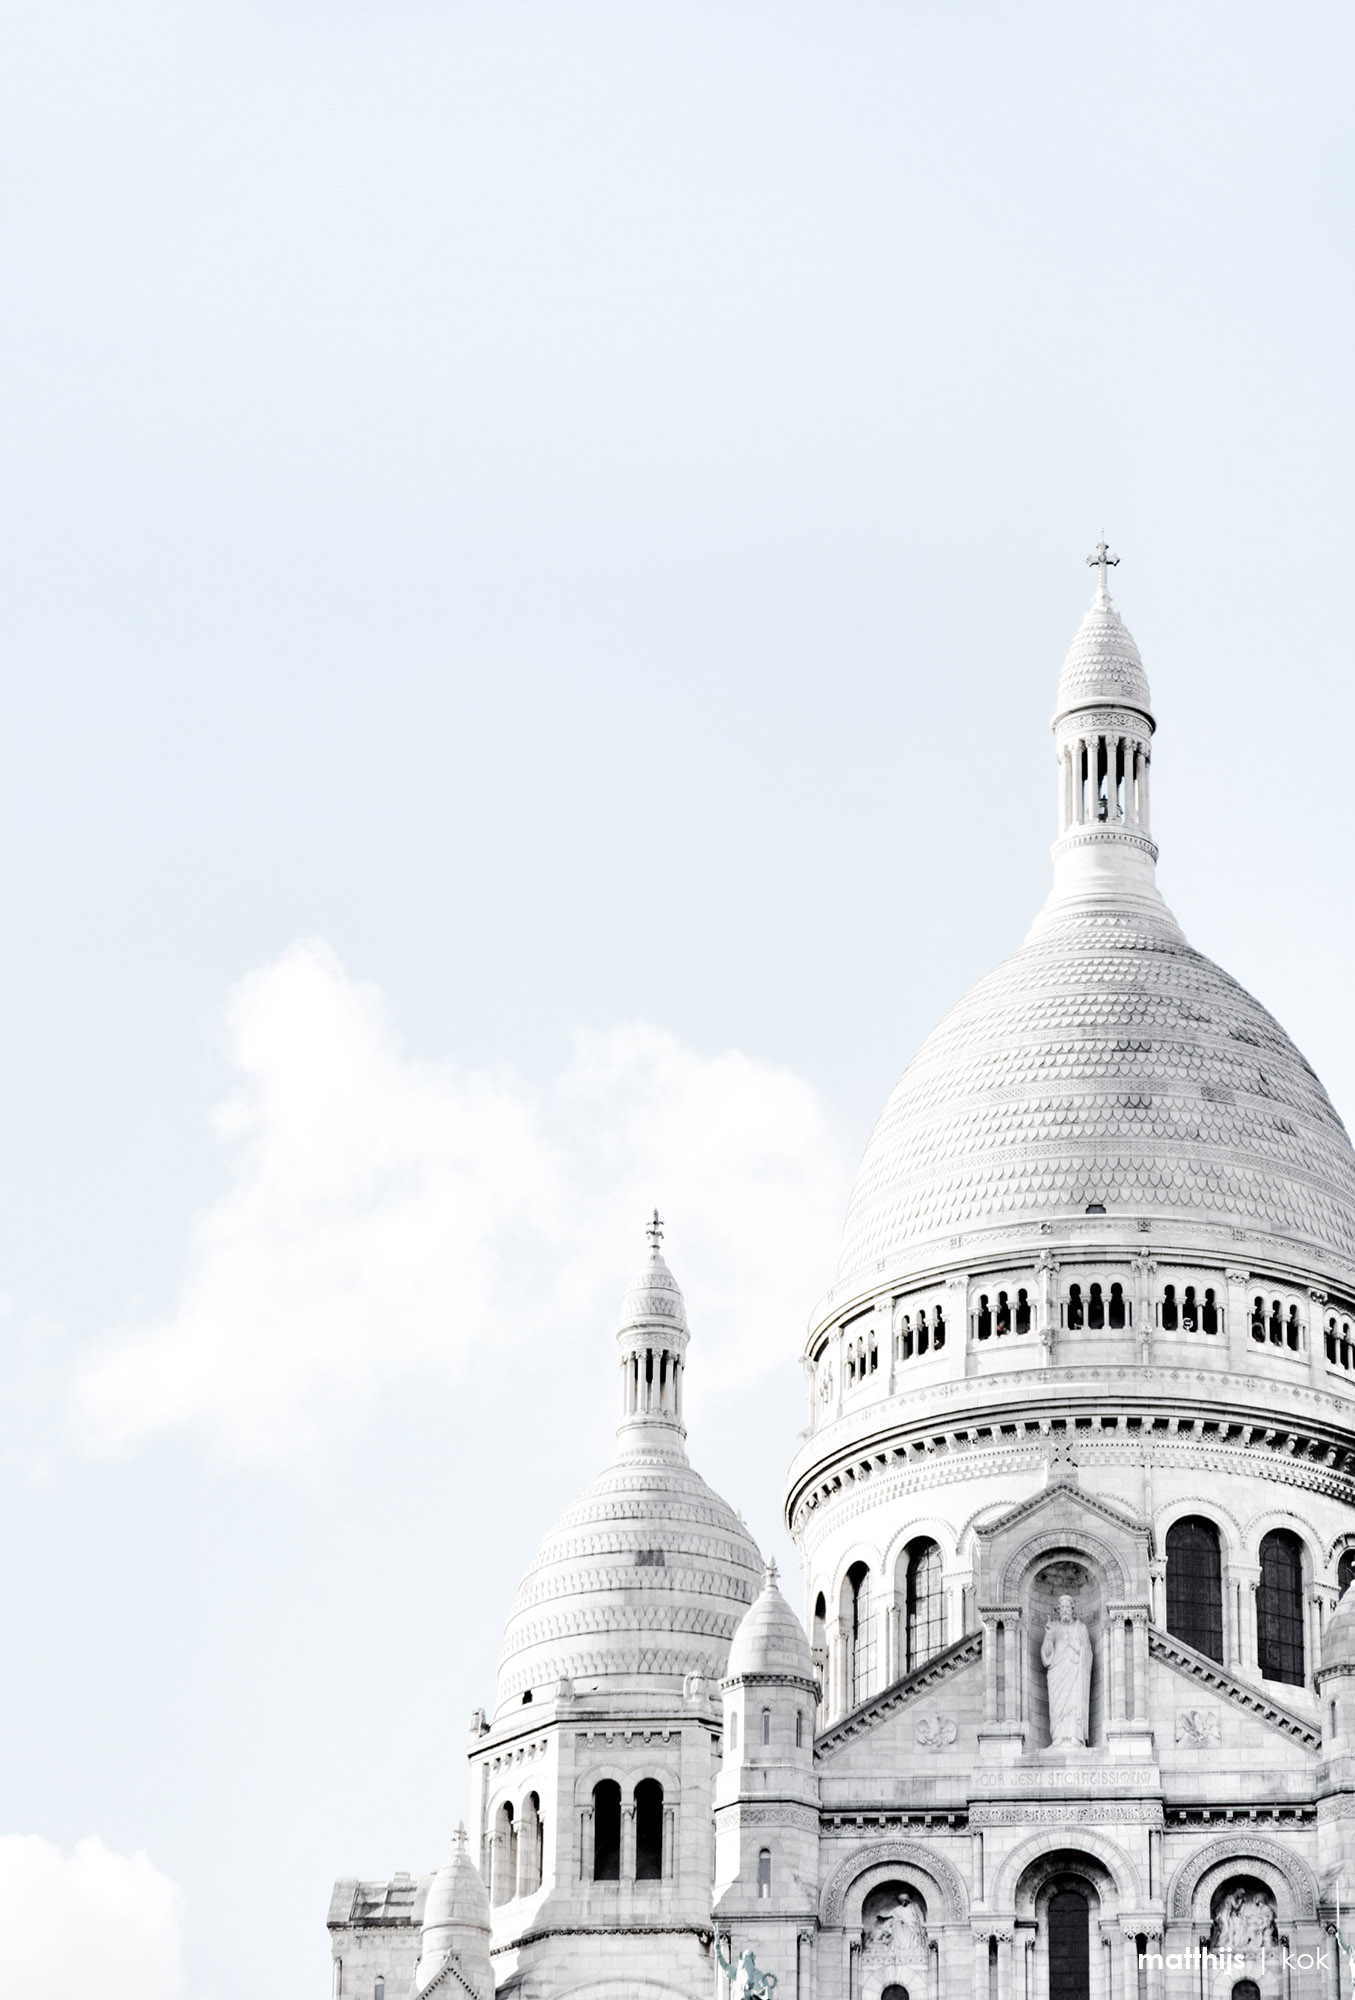 Sacré Coeur, Paris | Photo by Matthijs Kok